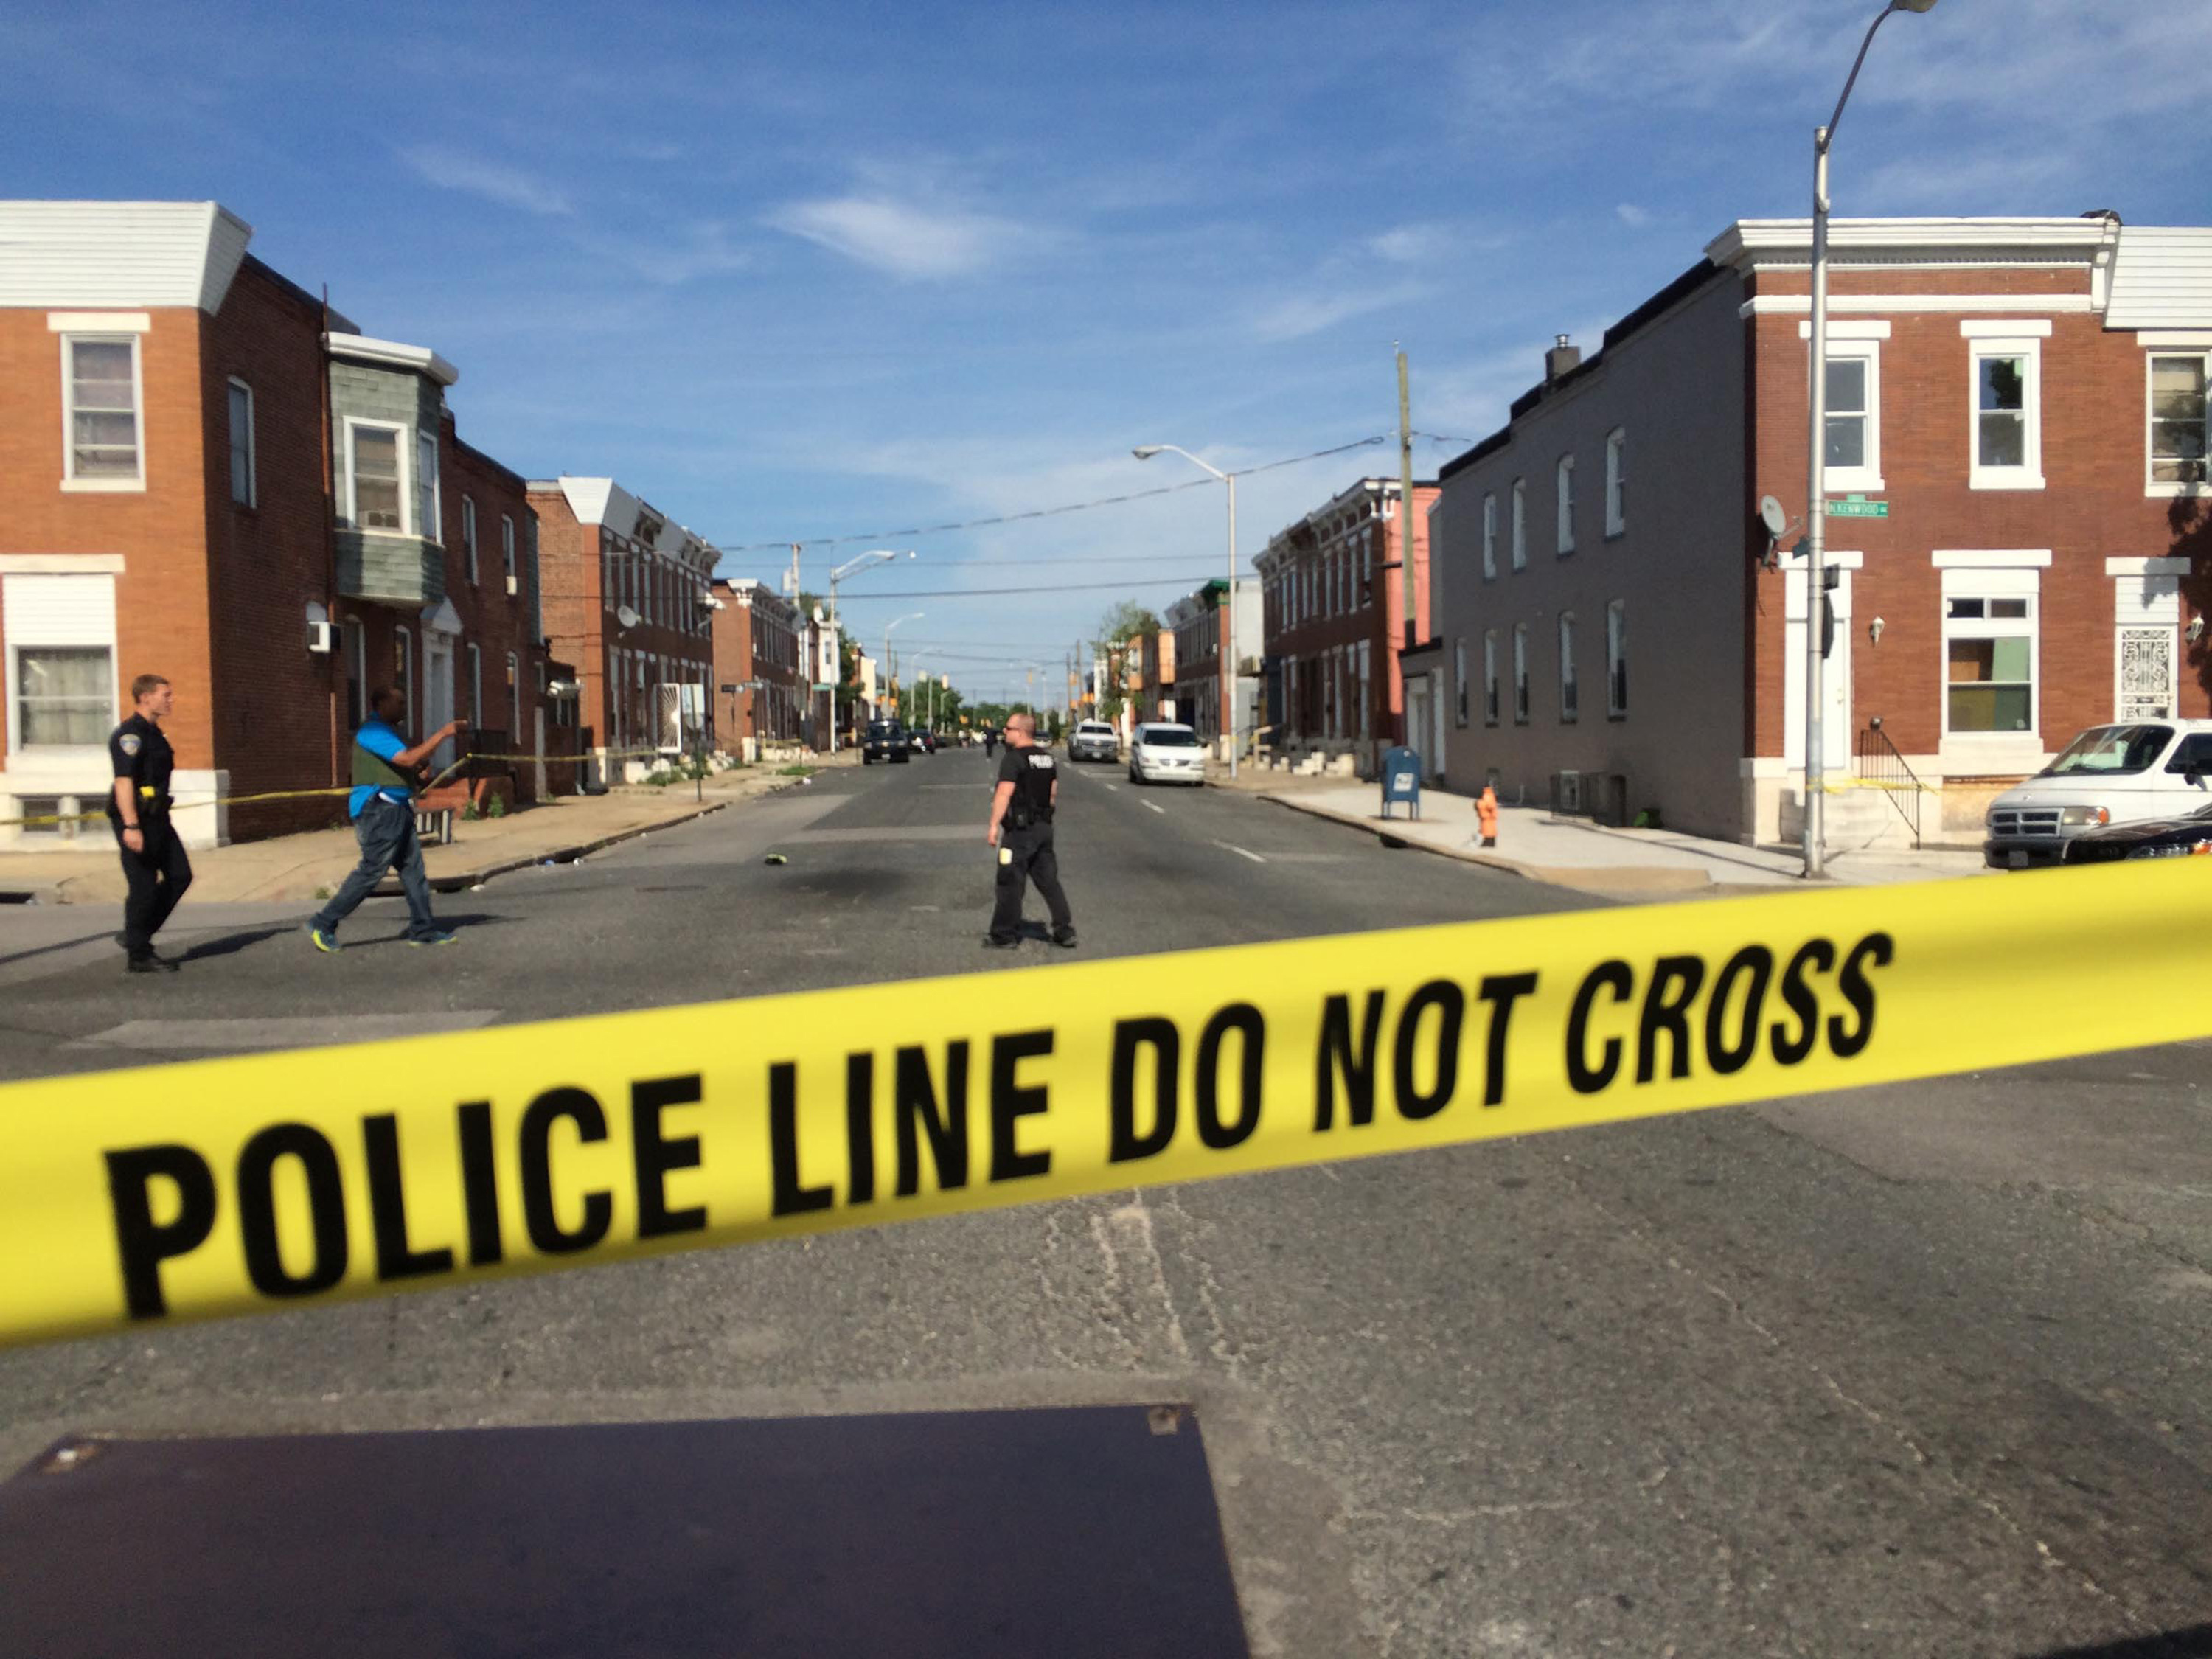 Madison Street is blocked by police due to a barricade situation on May 20, 2015 in Baltimore.